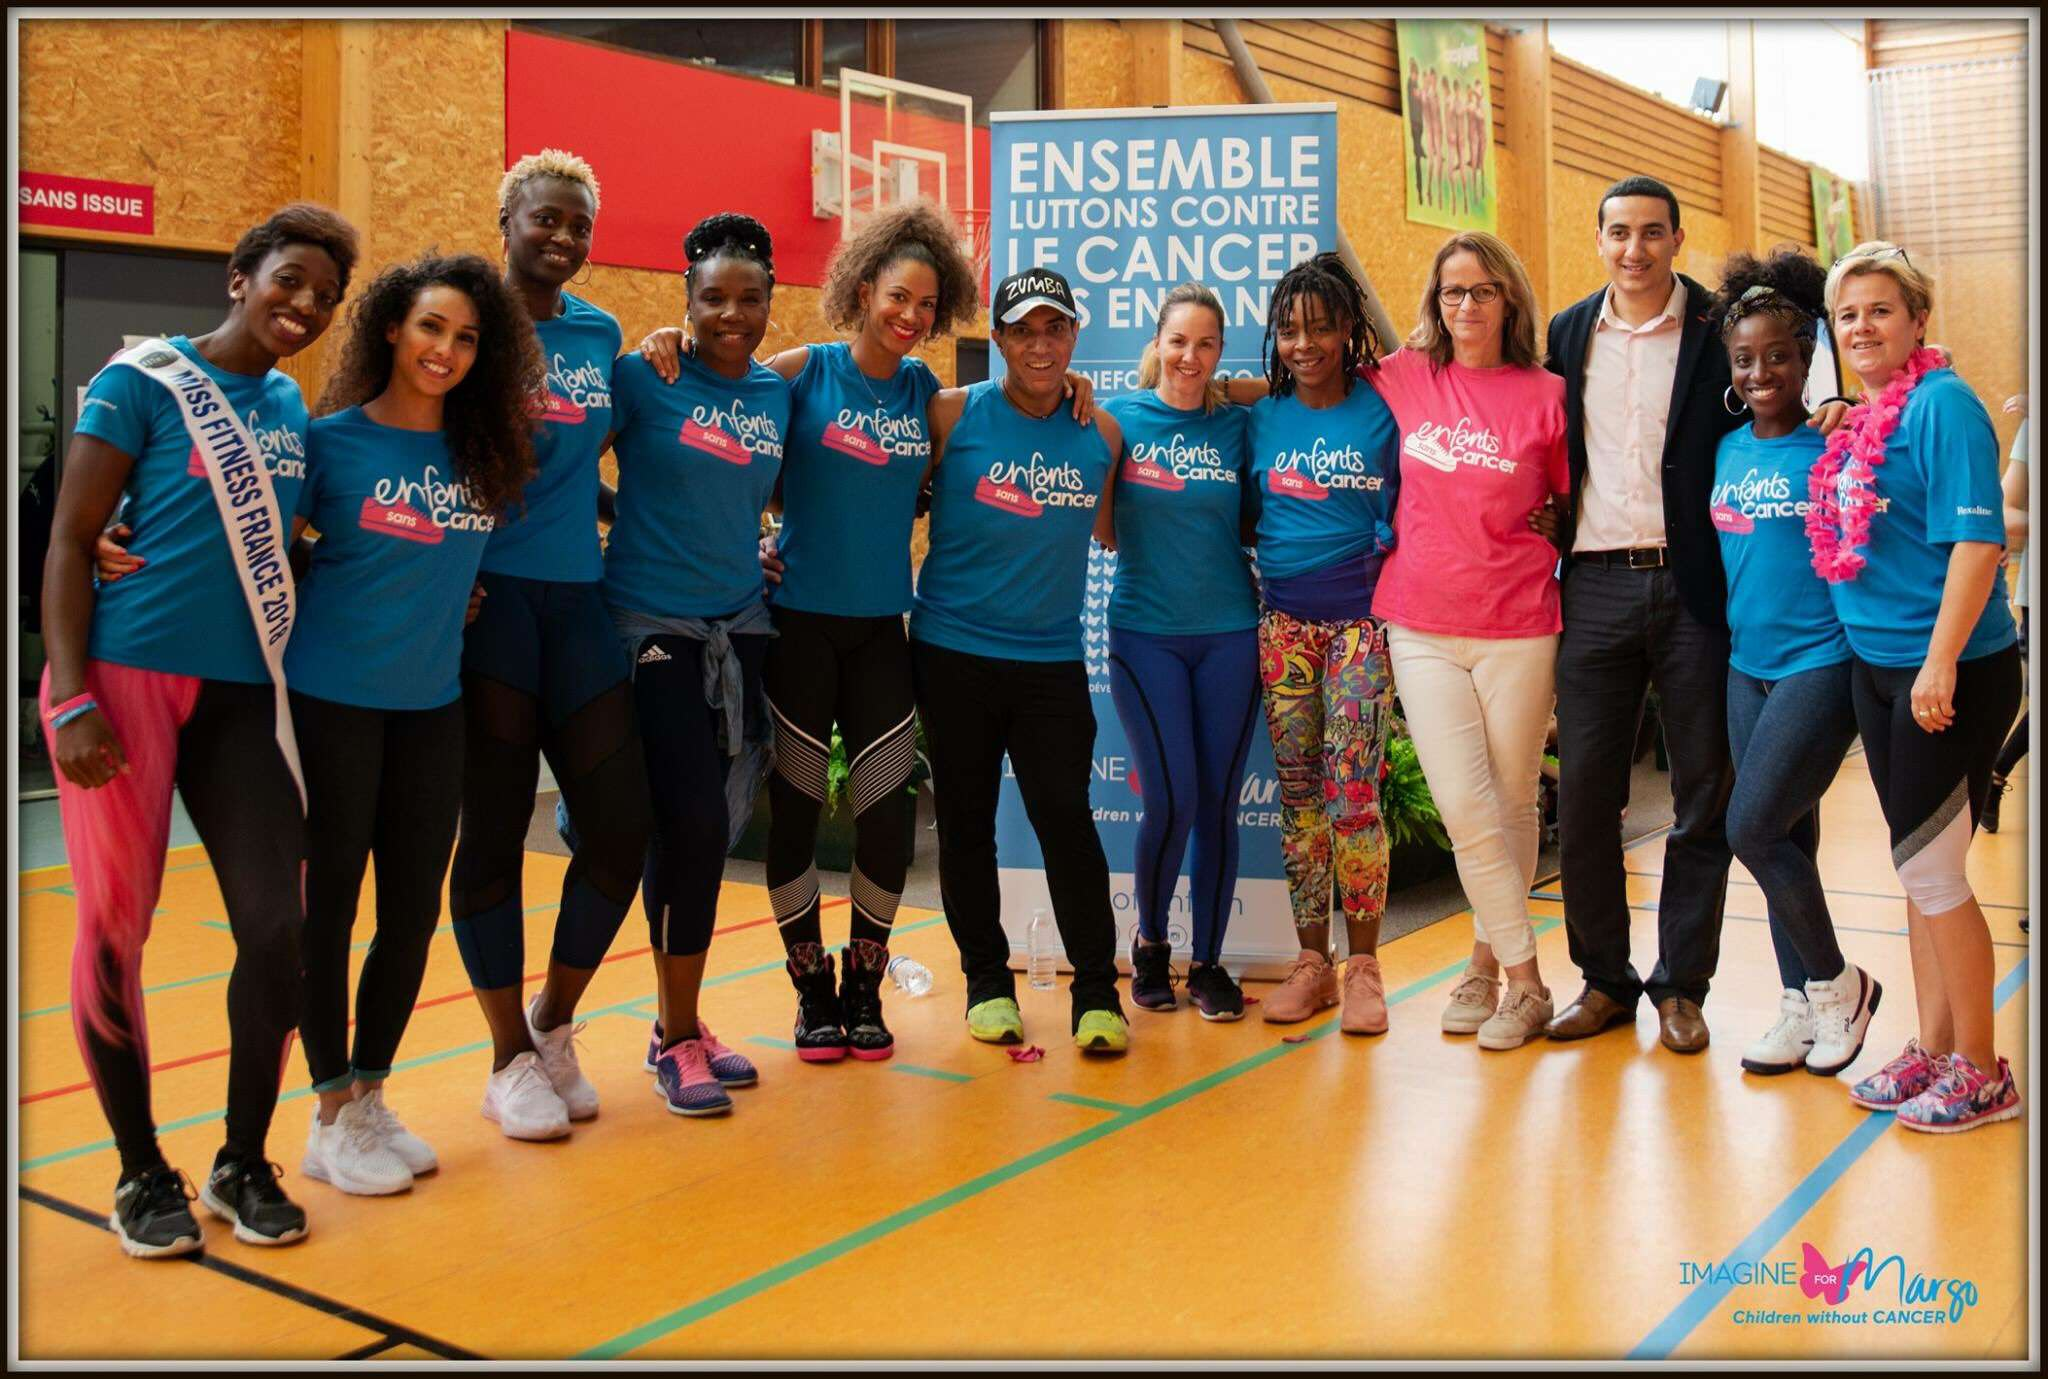 Zumba party caritative en soutien à la cause du cancer des enfants pour Imagine for Margo